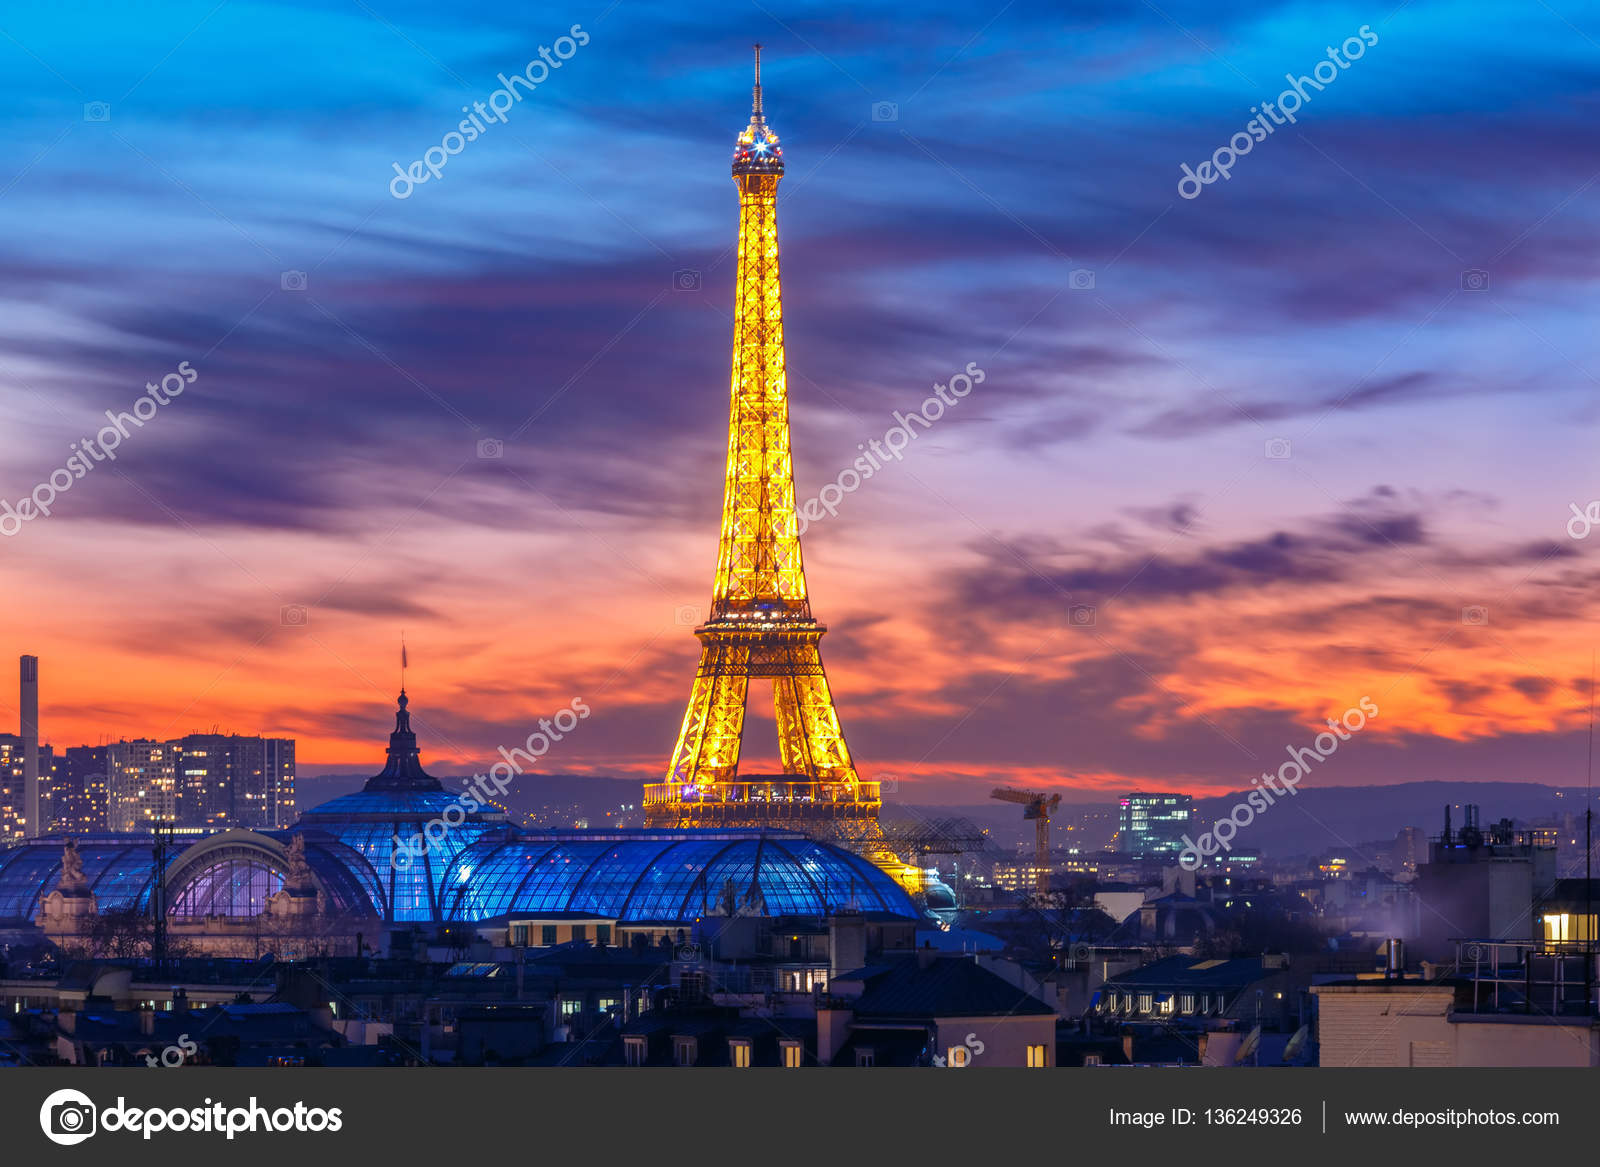 Pictures Eiffel Tower Sunset Shimmering Eiffel Tower At Sunset In Paris France Stock Editorial Photo C Olgacov 136249326